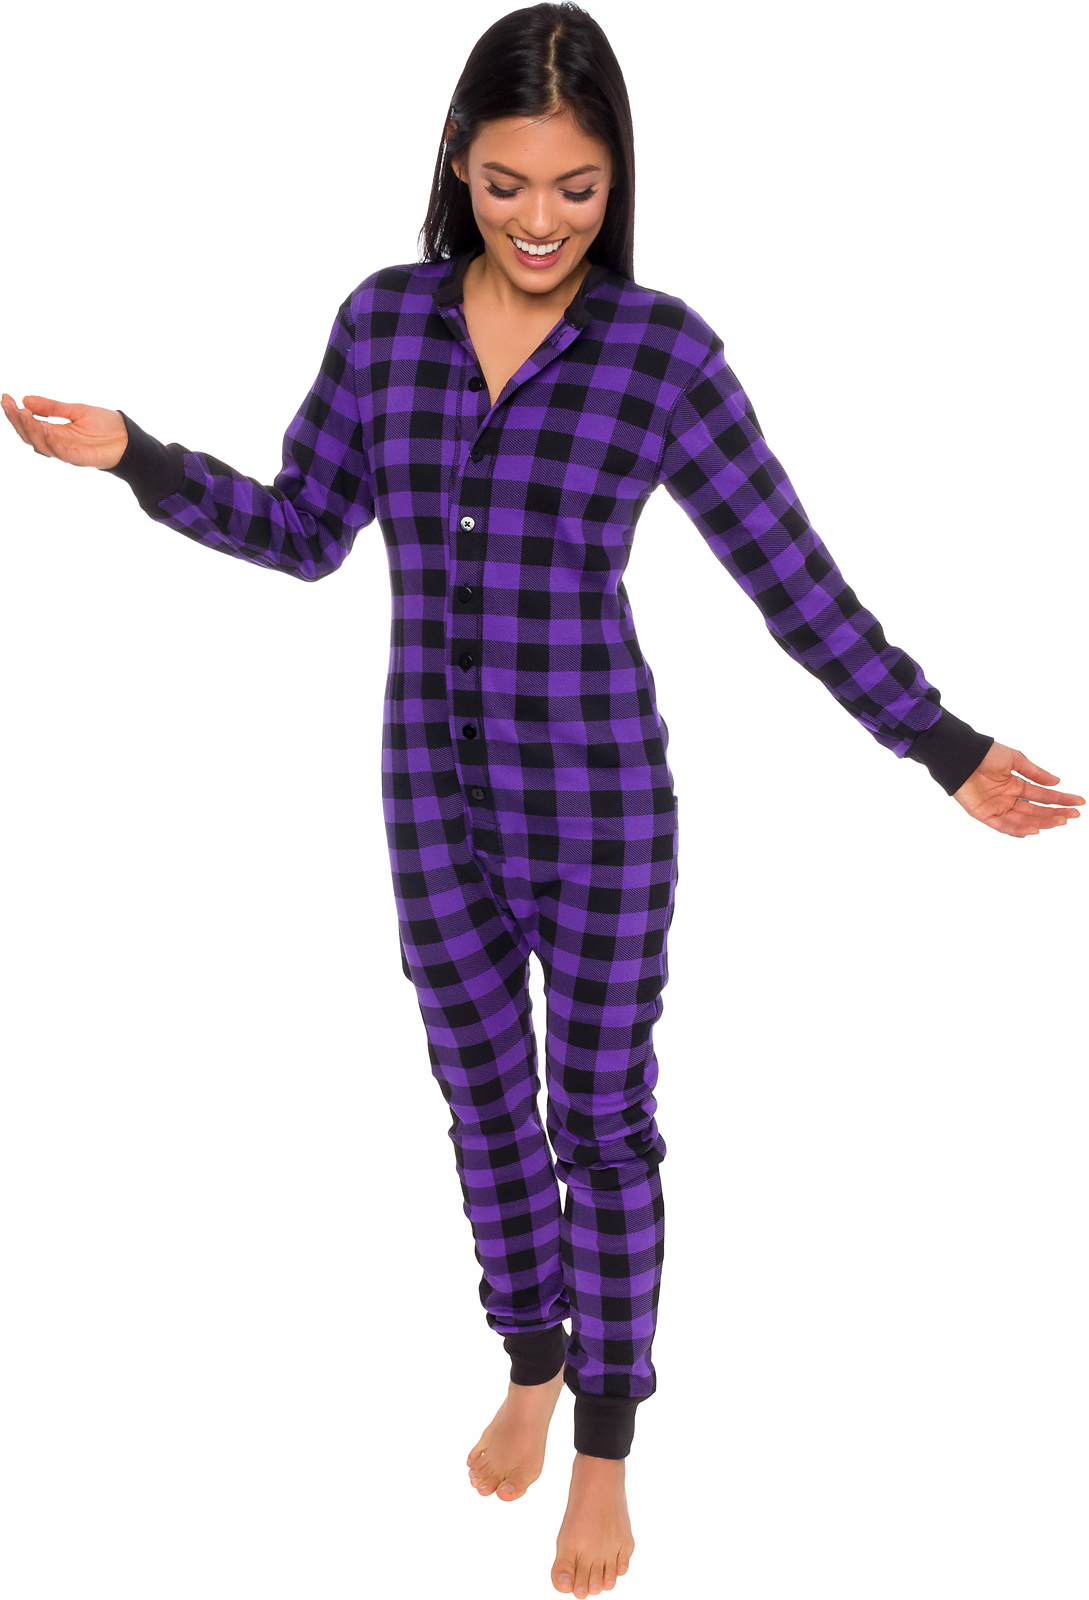 12ecdee8fa43 Silver Lilly - Silver Lilly Unisex Adult Plaid Thermal One Piece Union Suit  Pajamas w  Drop Seat - Walmart.com